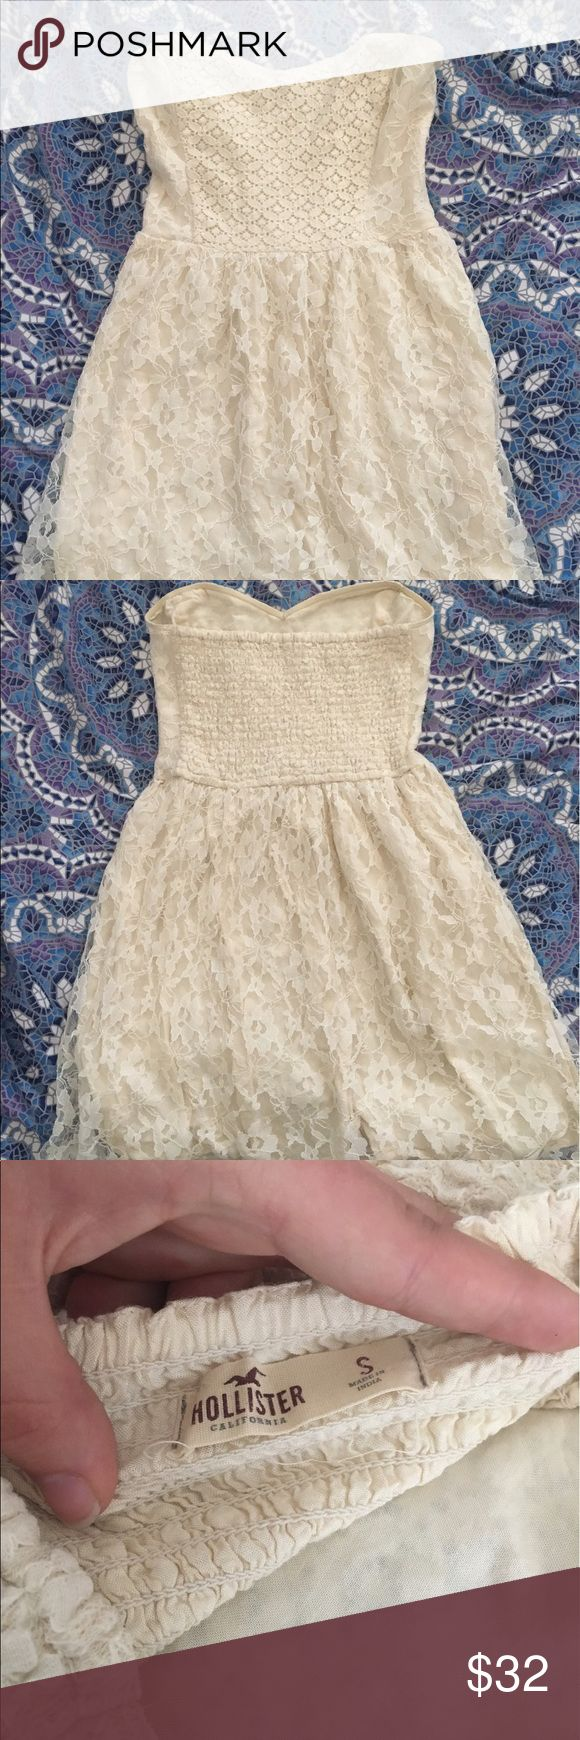 small strapless Hollister cream lace dress cream lace dress size small. no rips or stains, worn a few times. not super short but cuts off mid thigh-knee. open to offers Hollister Dresses Strapless